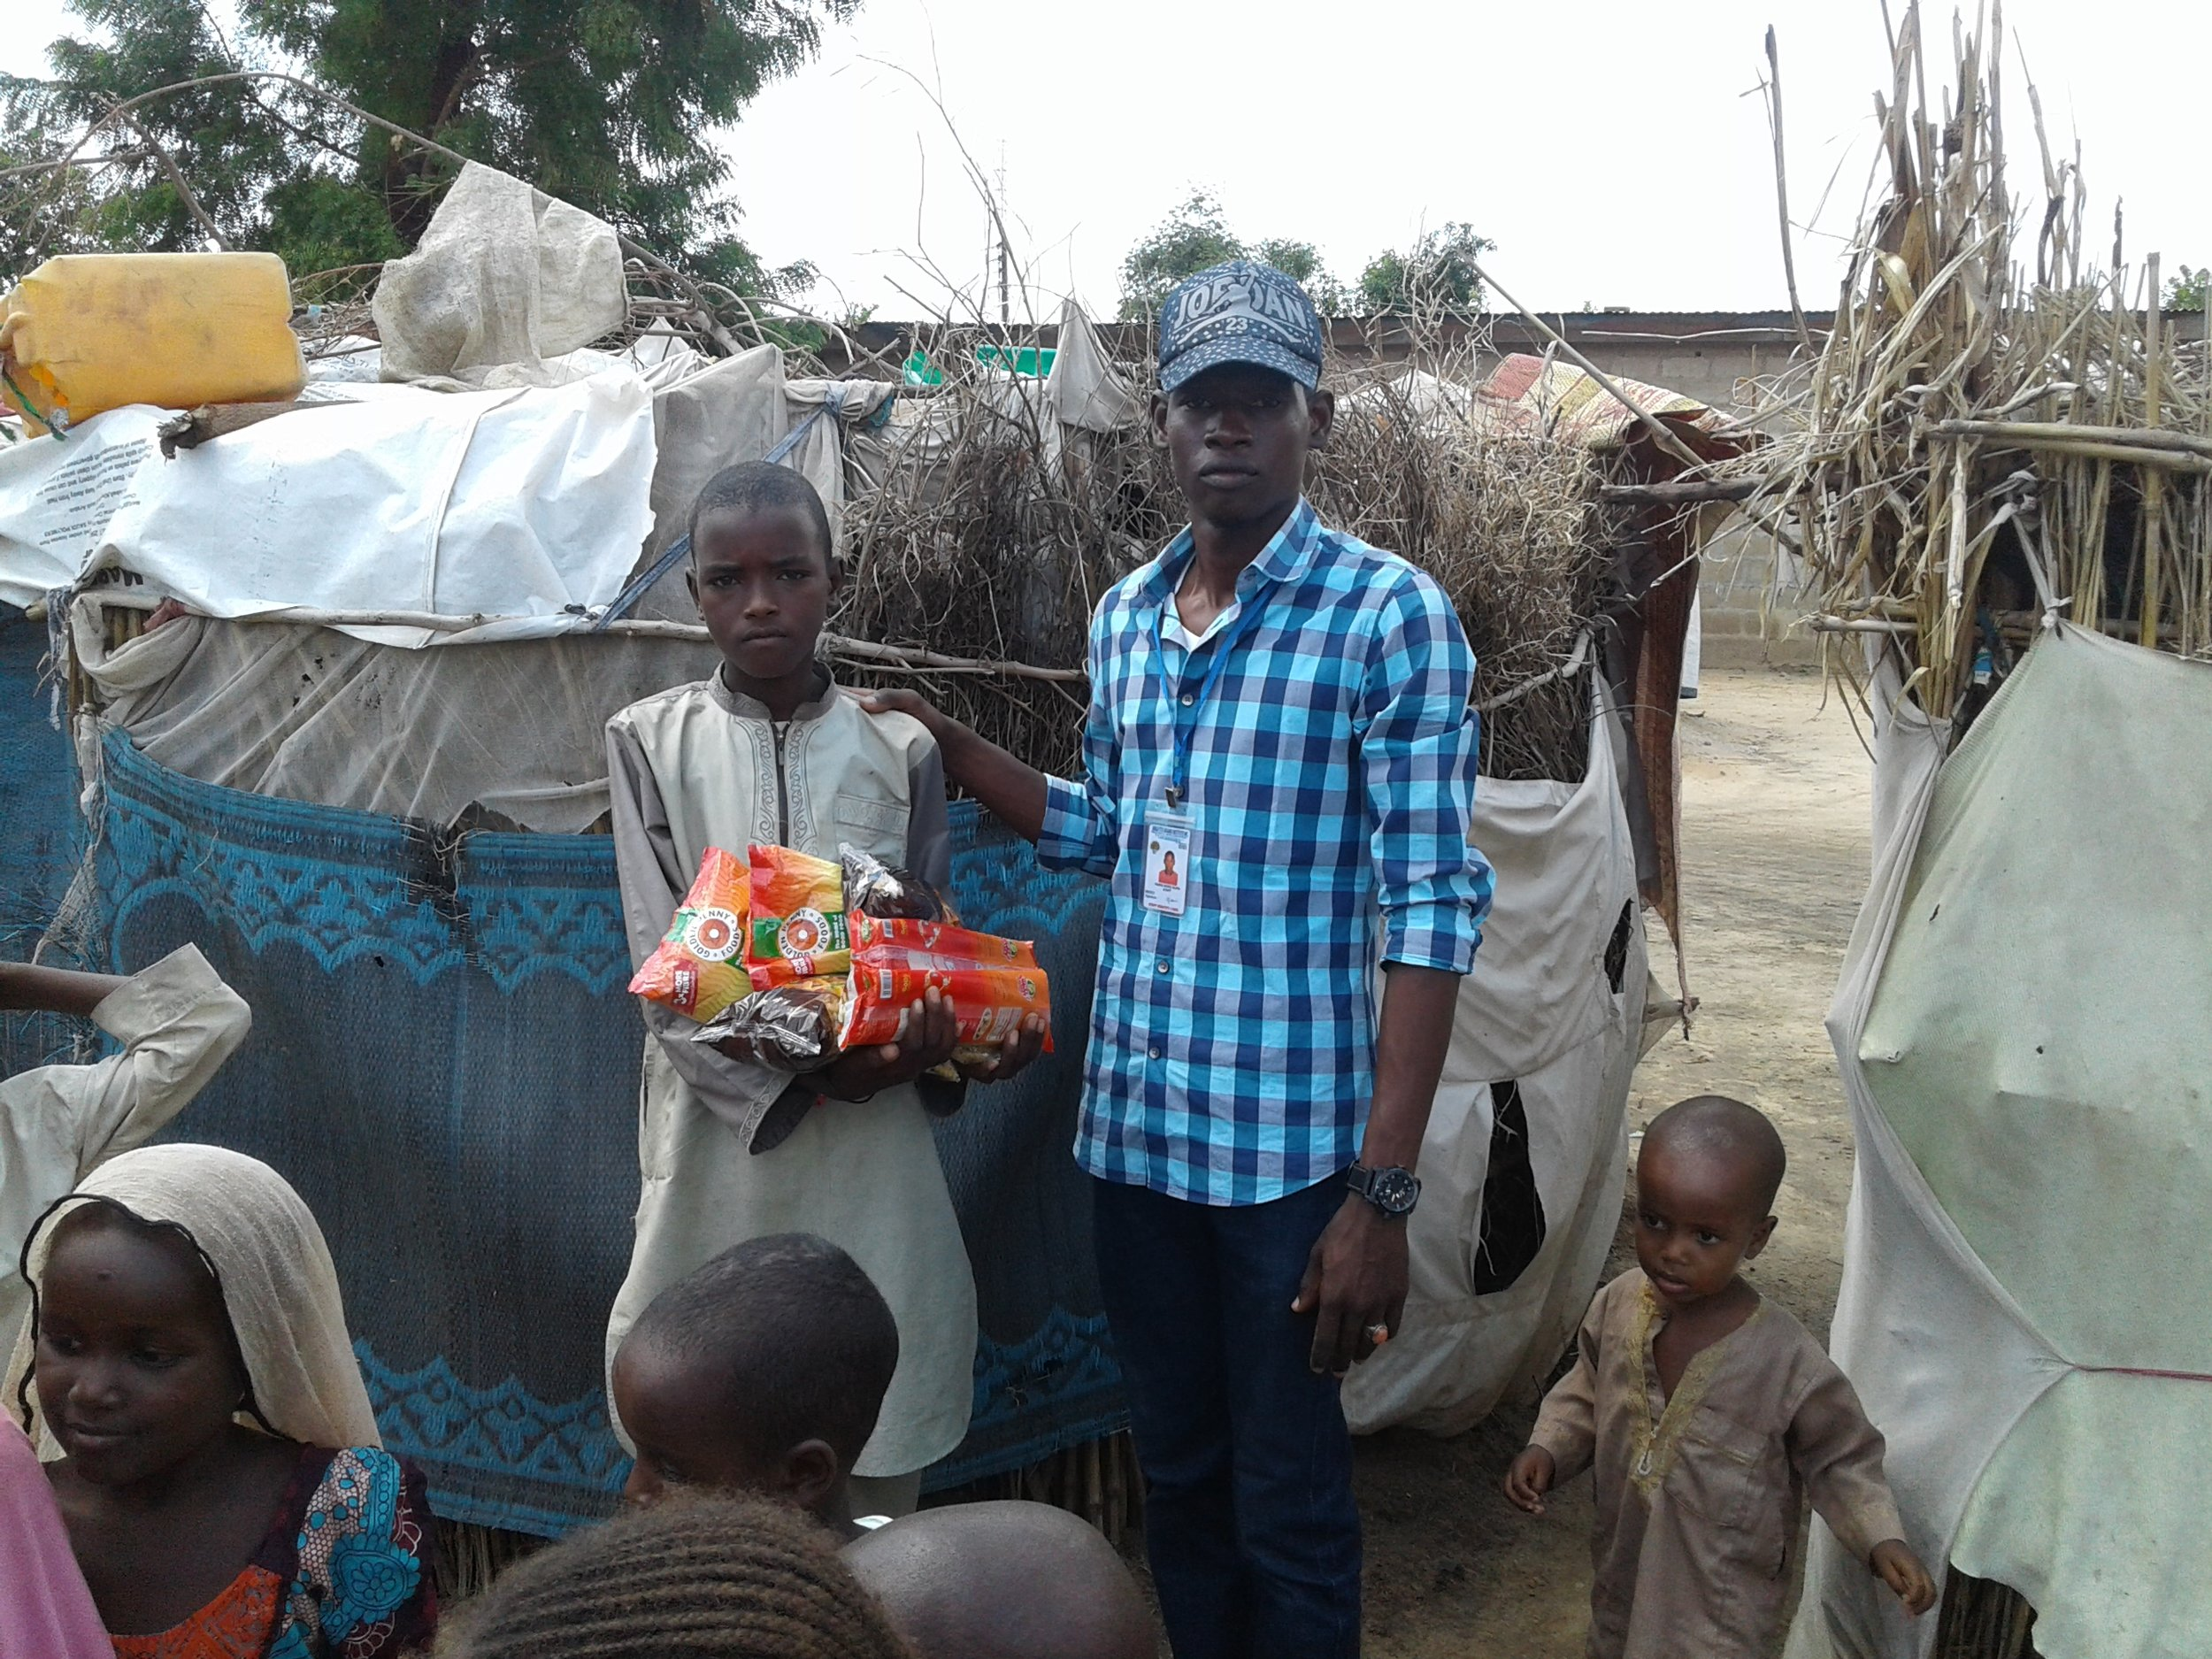 There are 3 million refugees from Boko Haram, many live in squalid camps - we feed as many as we can